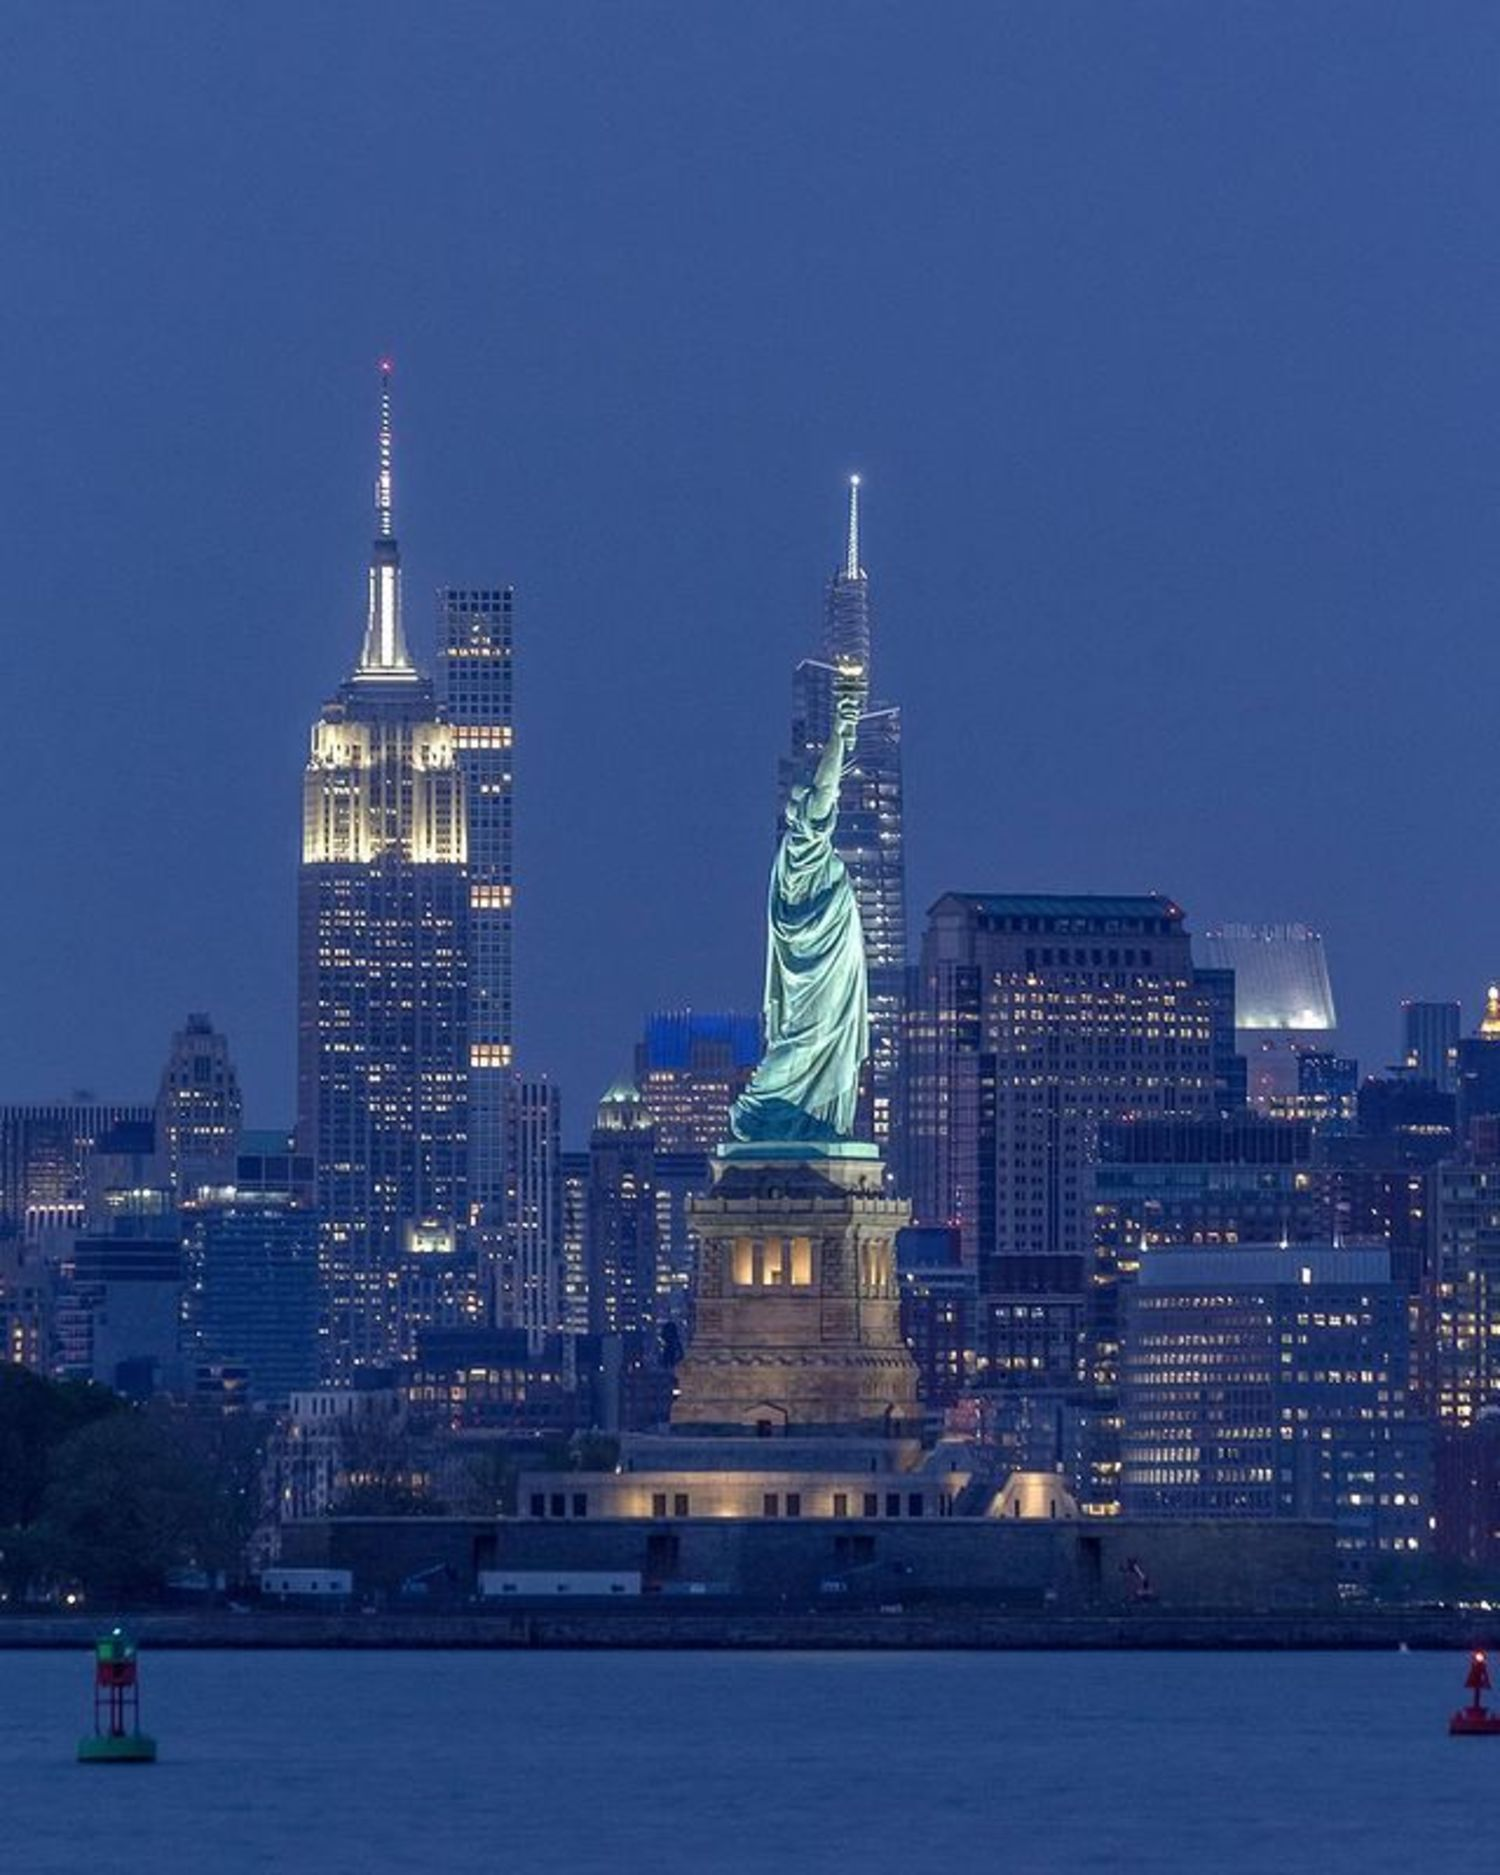 Statue of Liberty National Monument, New York